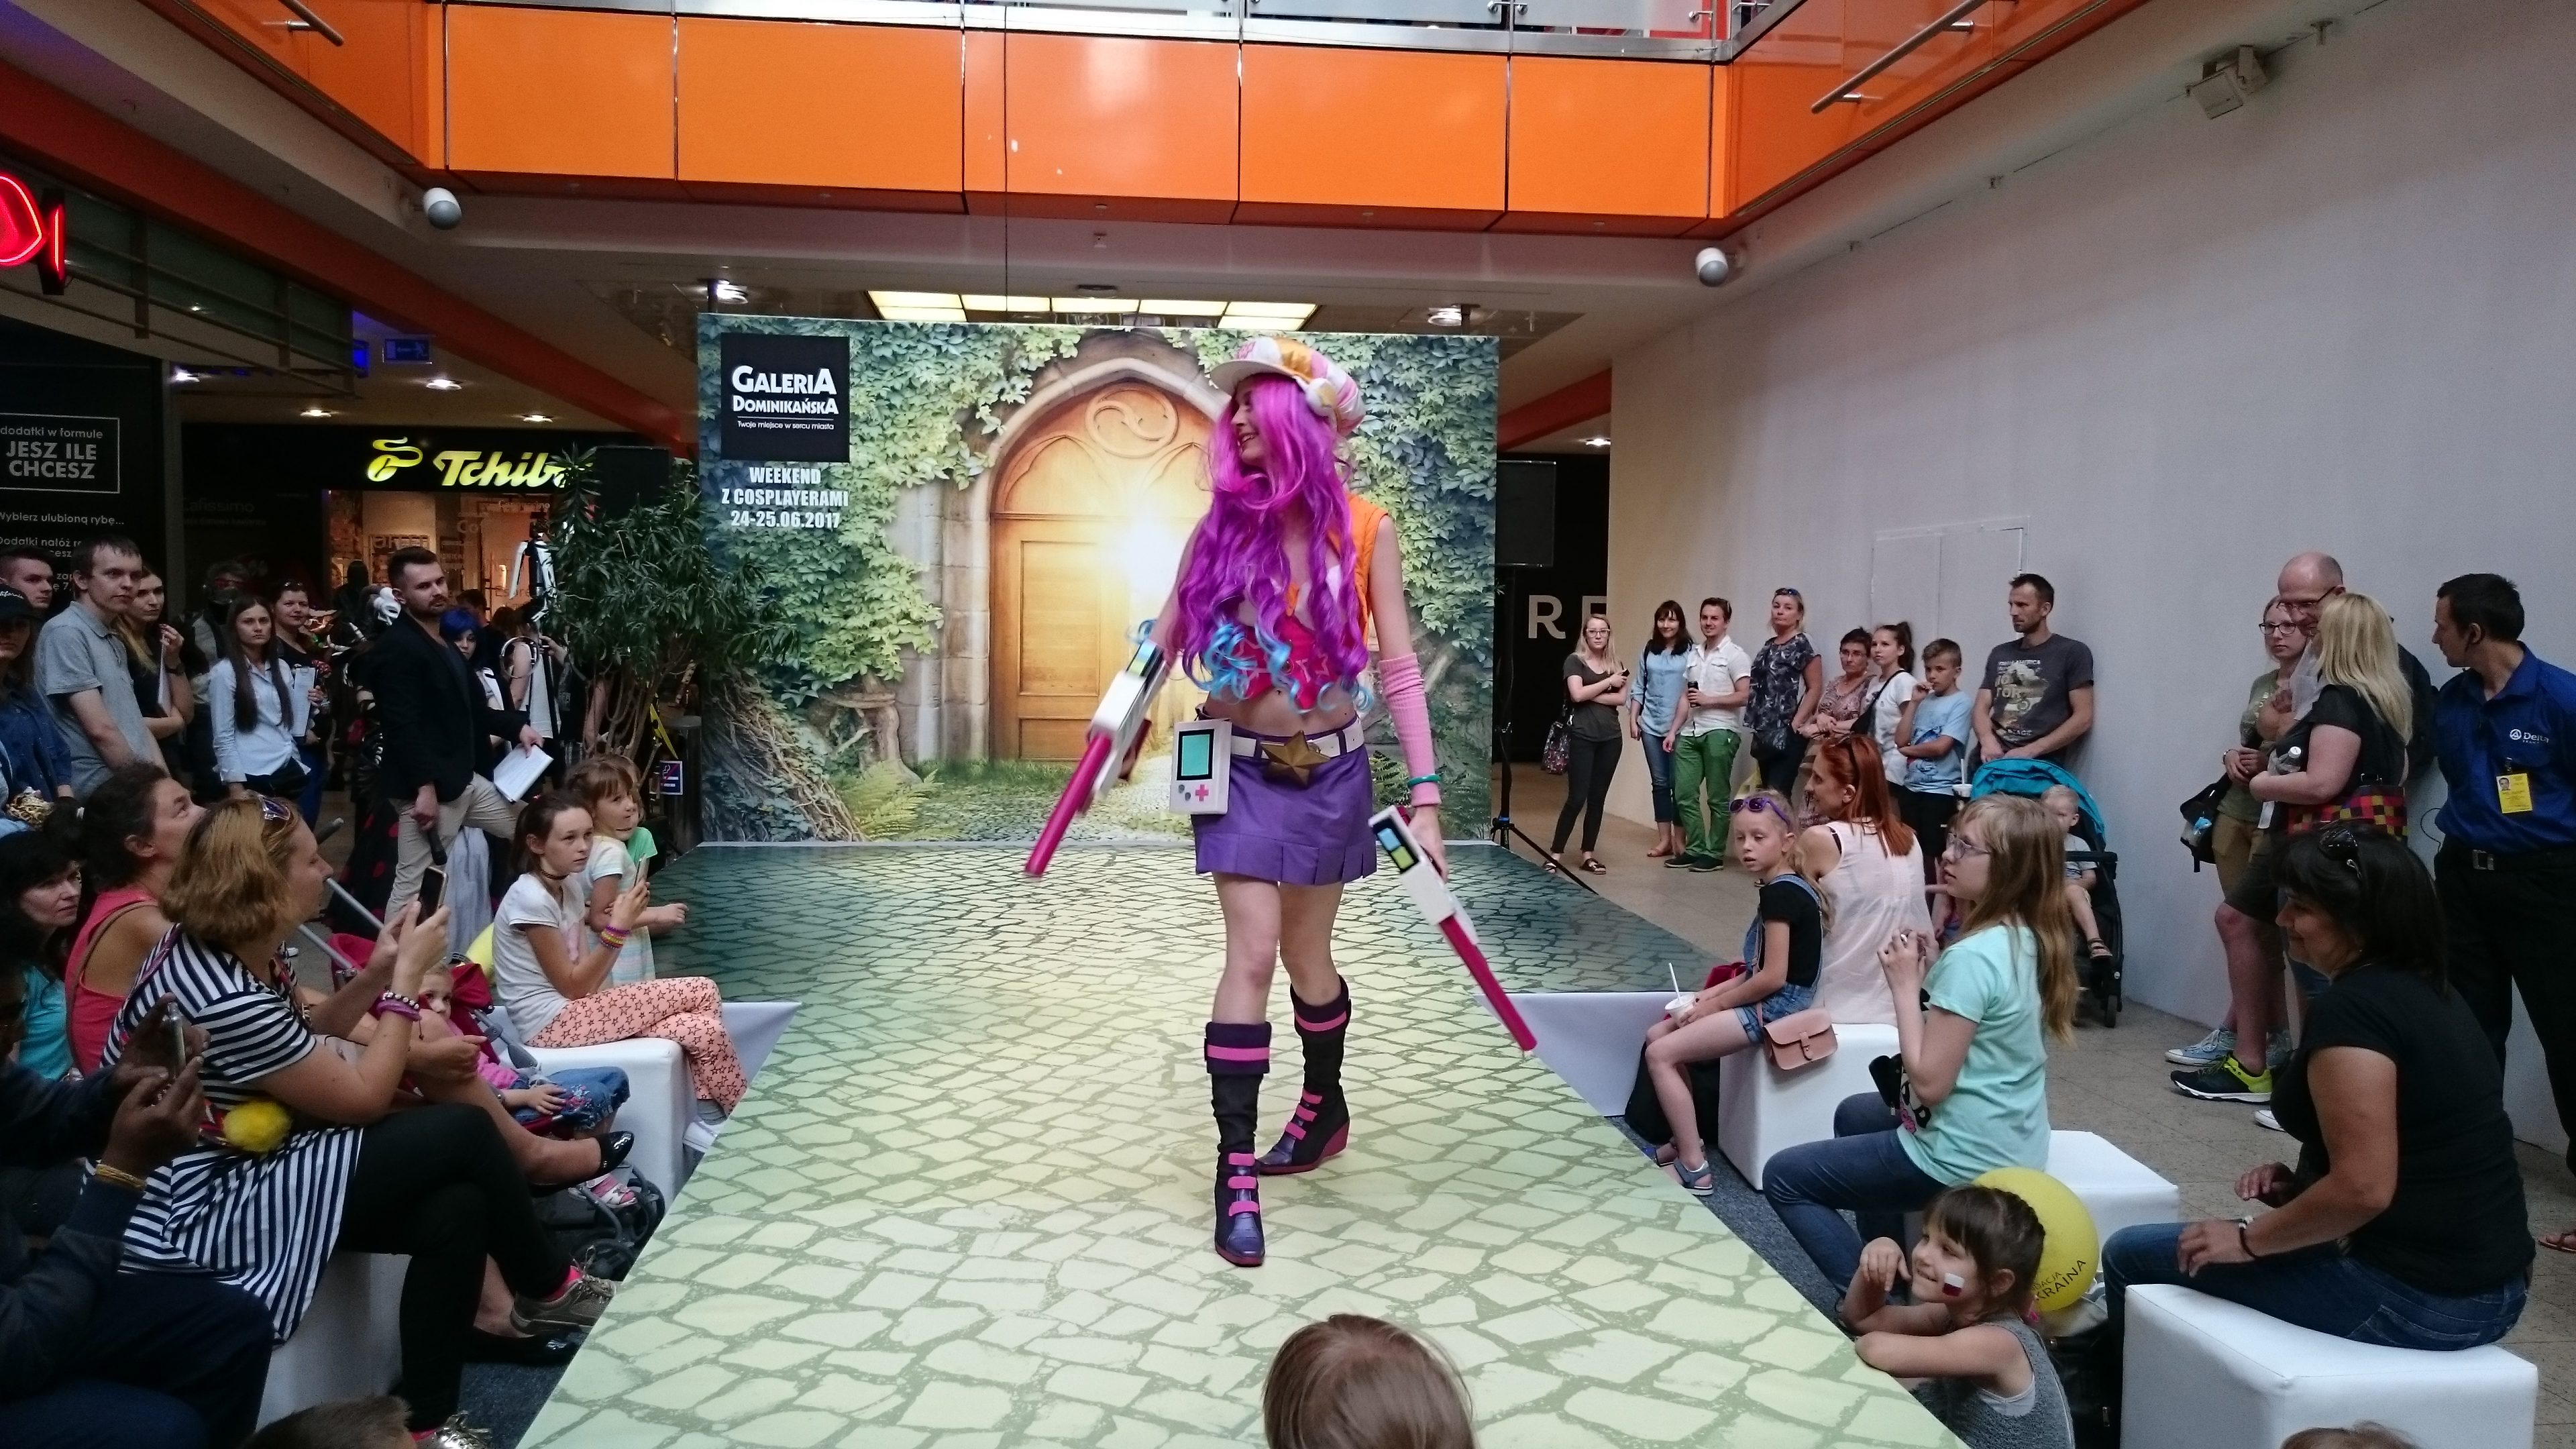 Marruda w cosplayu jako Arcade Miss Fortune z gry League of Legends podczas weekendu z cosplayerami w Galerii Dominikańskiej we Wrocławiu